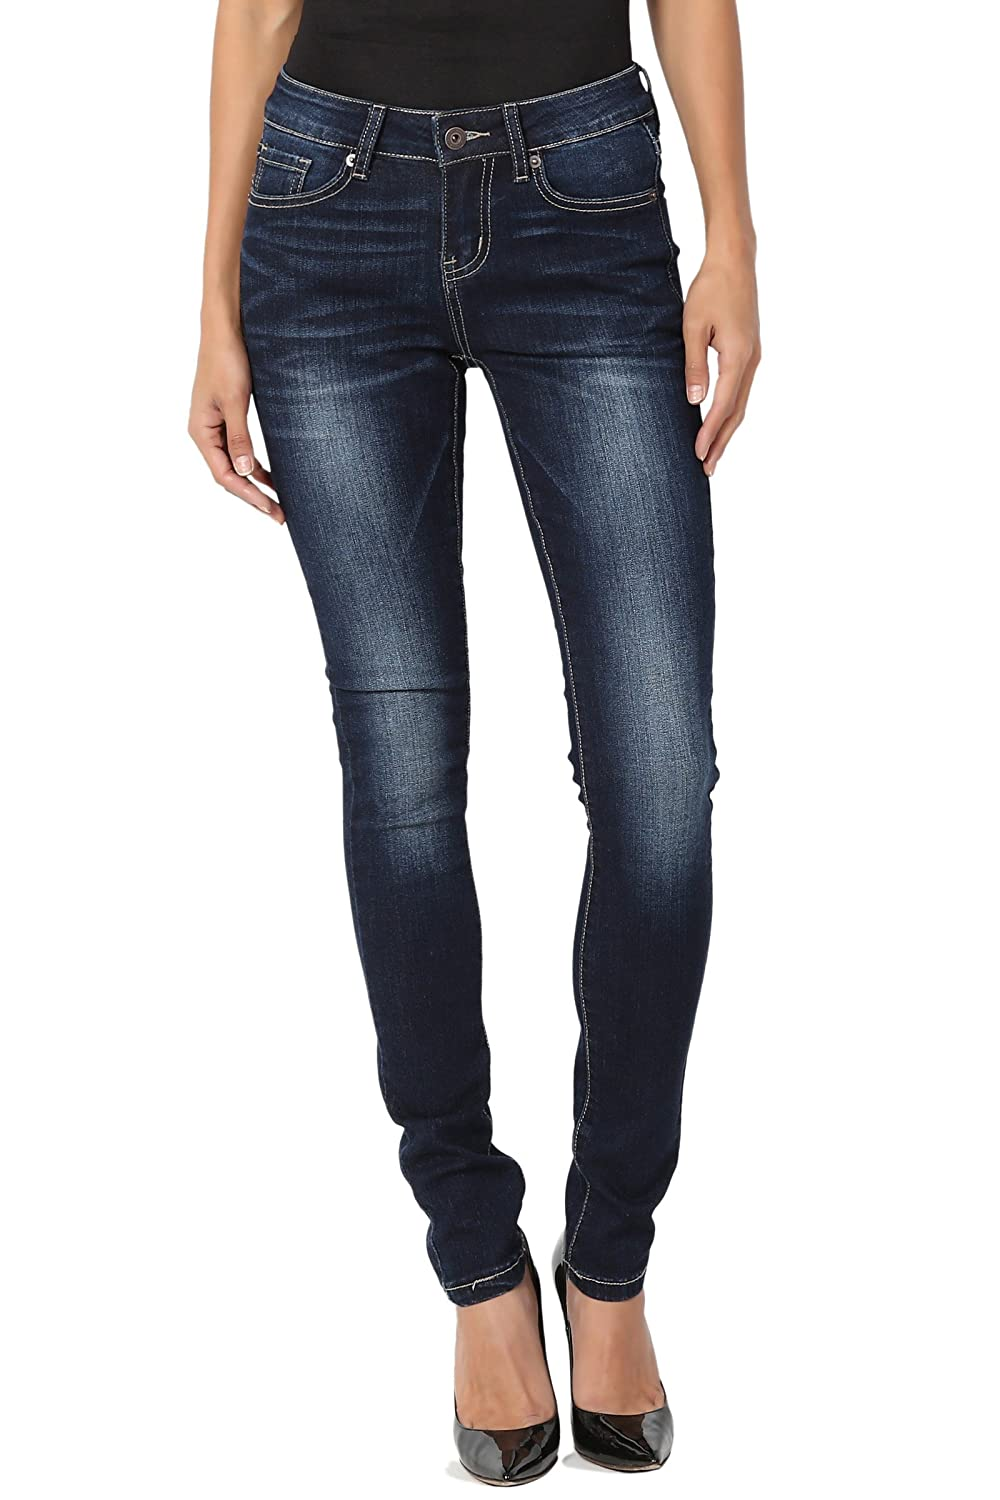 TheMogan Women's Distressed Ripped Destroyed Torned Dark Blue Wash Skinny Jeans CLG-8156